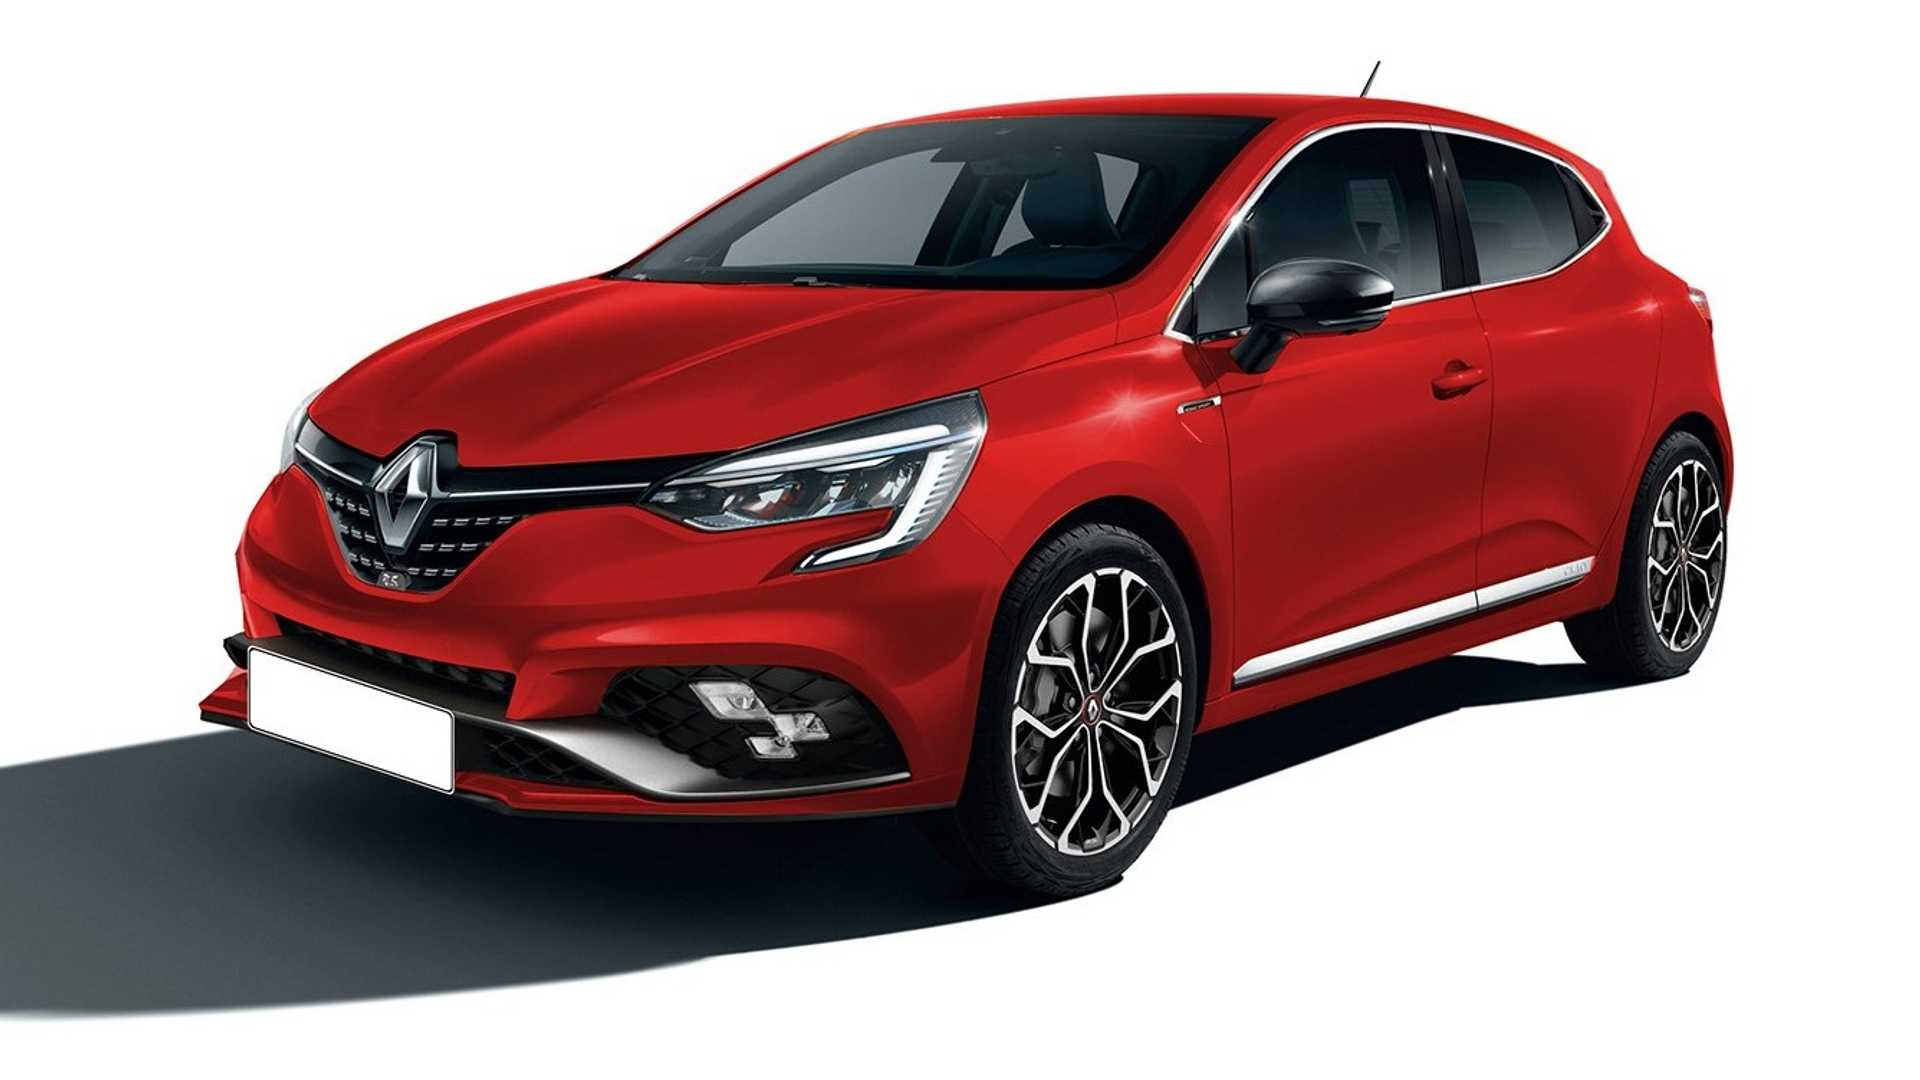 New Renault Clio Rs Render Is The Hot Hatch We Re Waiting For